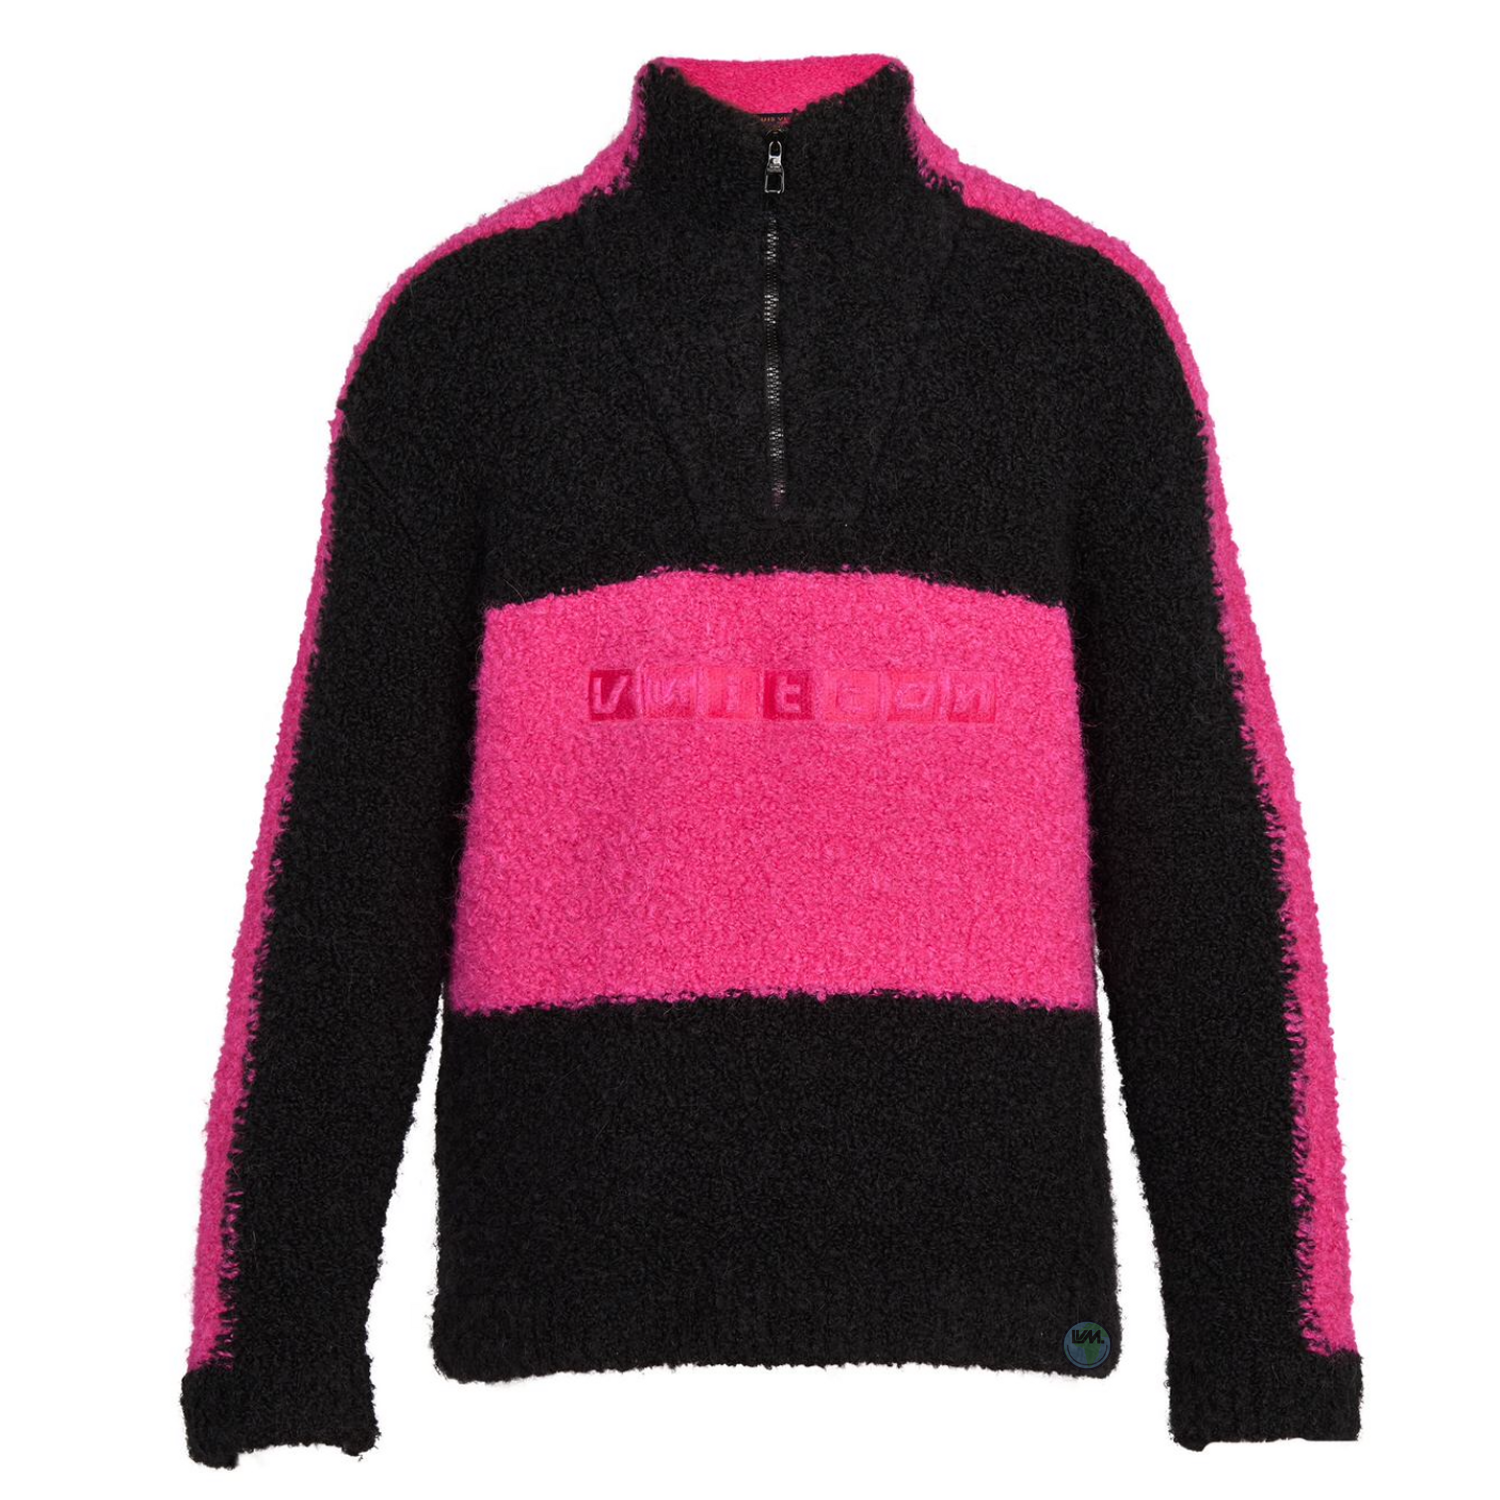 FLEECE JUMPER - €890 $11901A5CEKNOIR